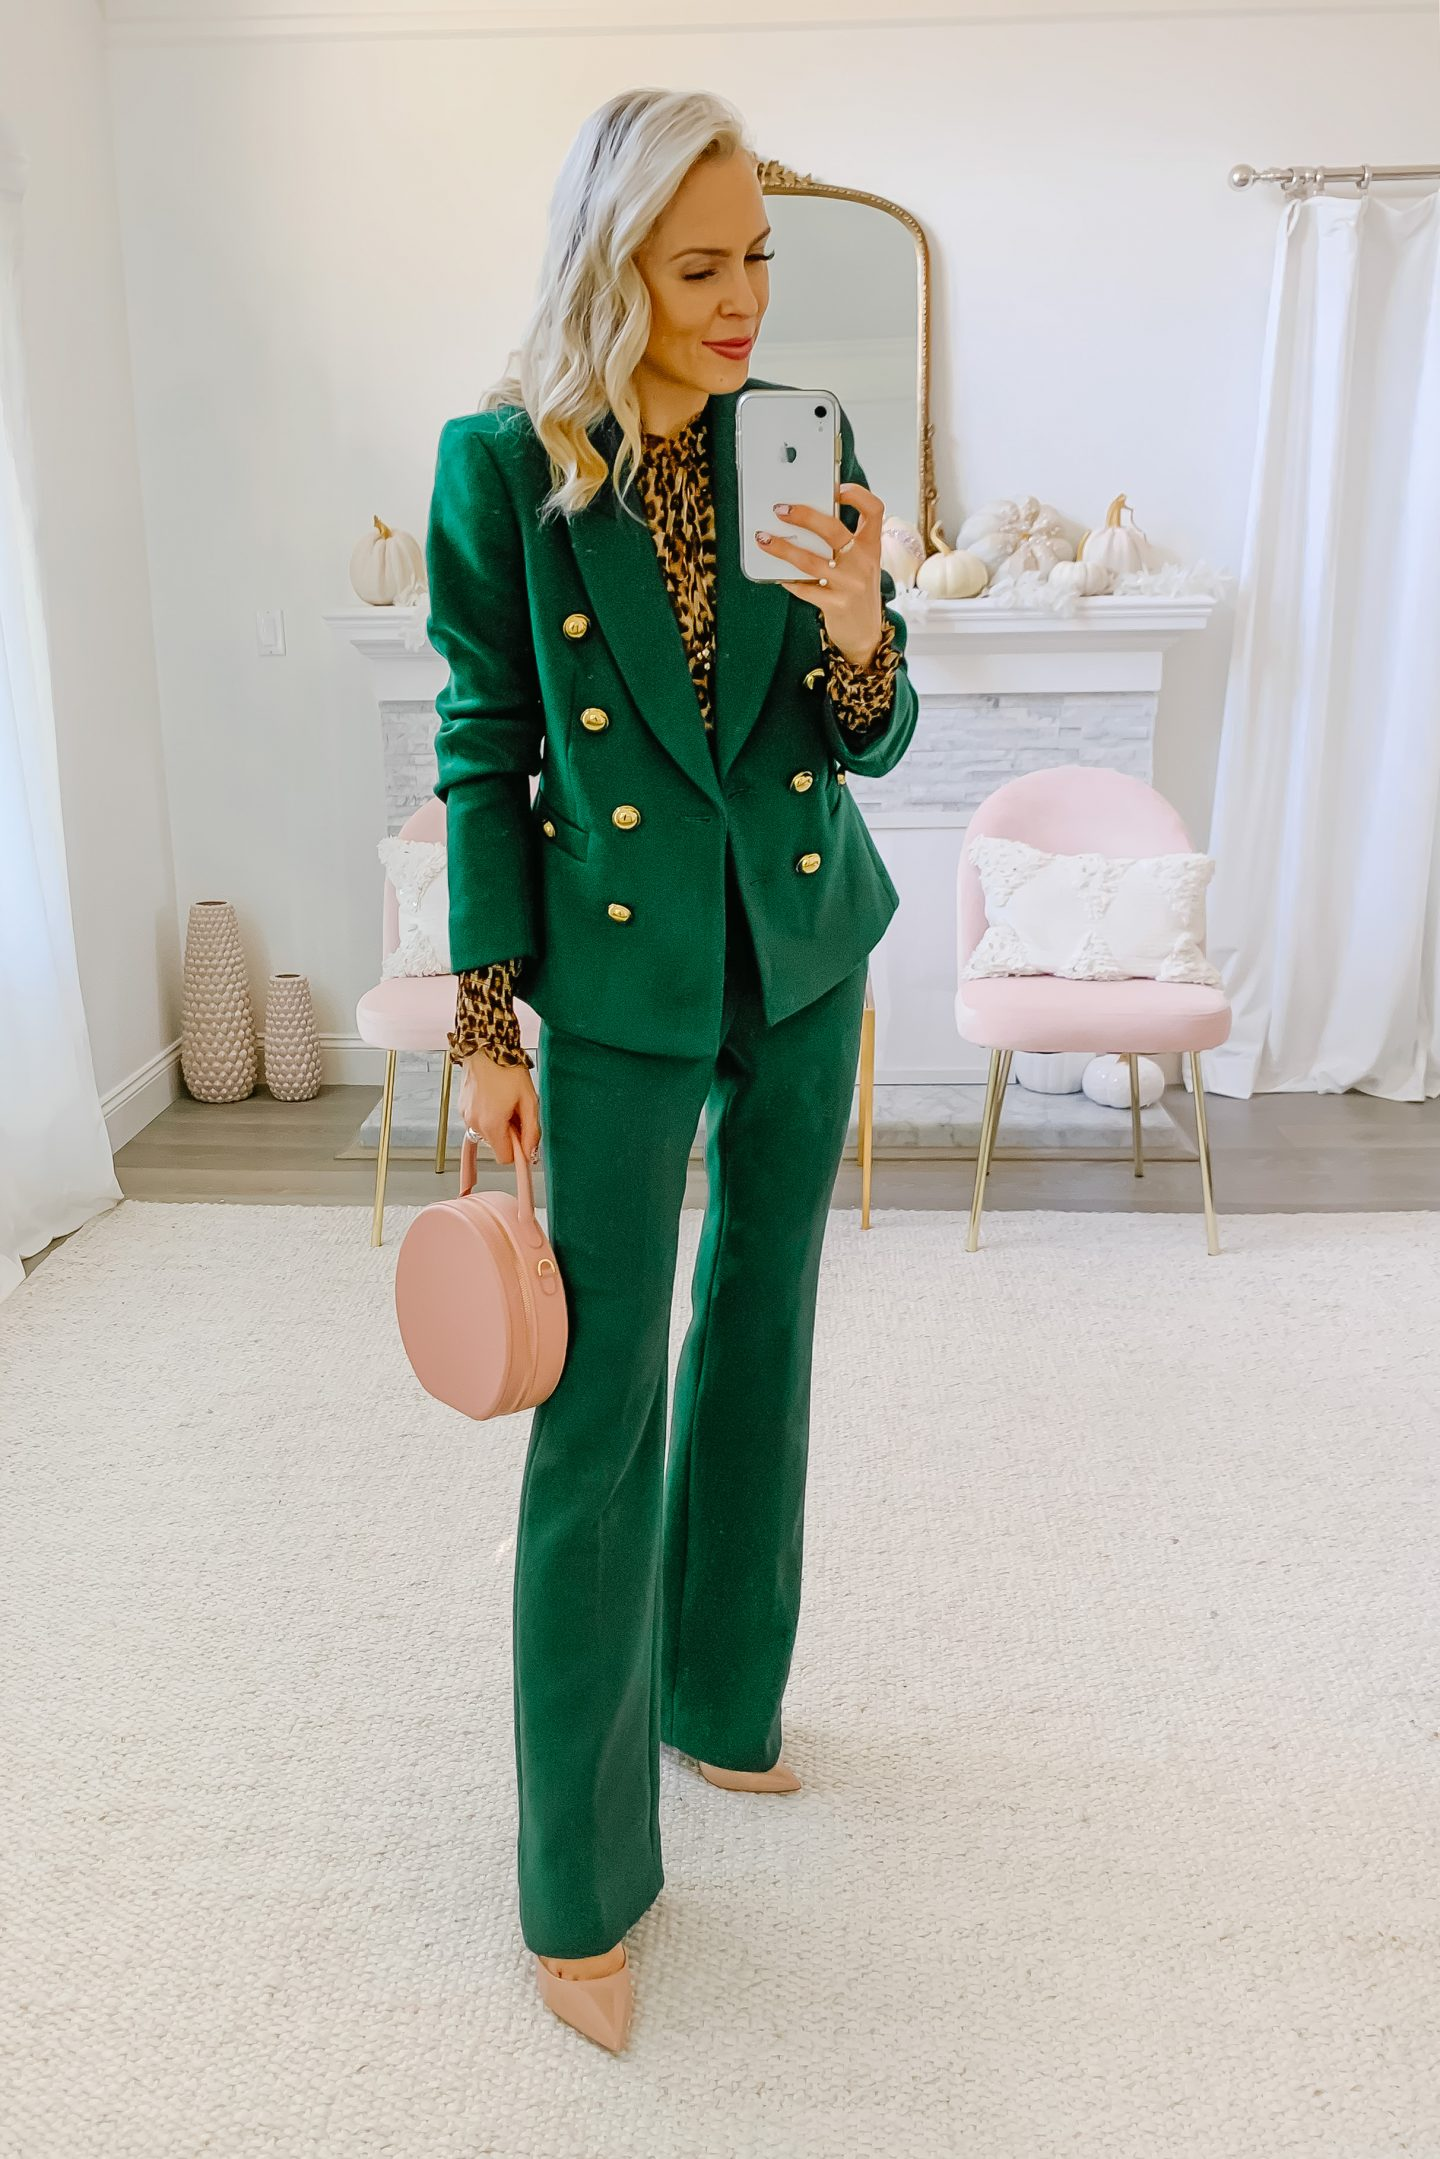 Halogen x Atlantic-Pacific green suit styled by top San Francisco fashion blogger Lombard and Fifth.